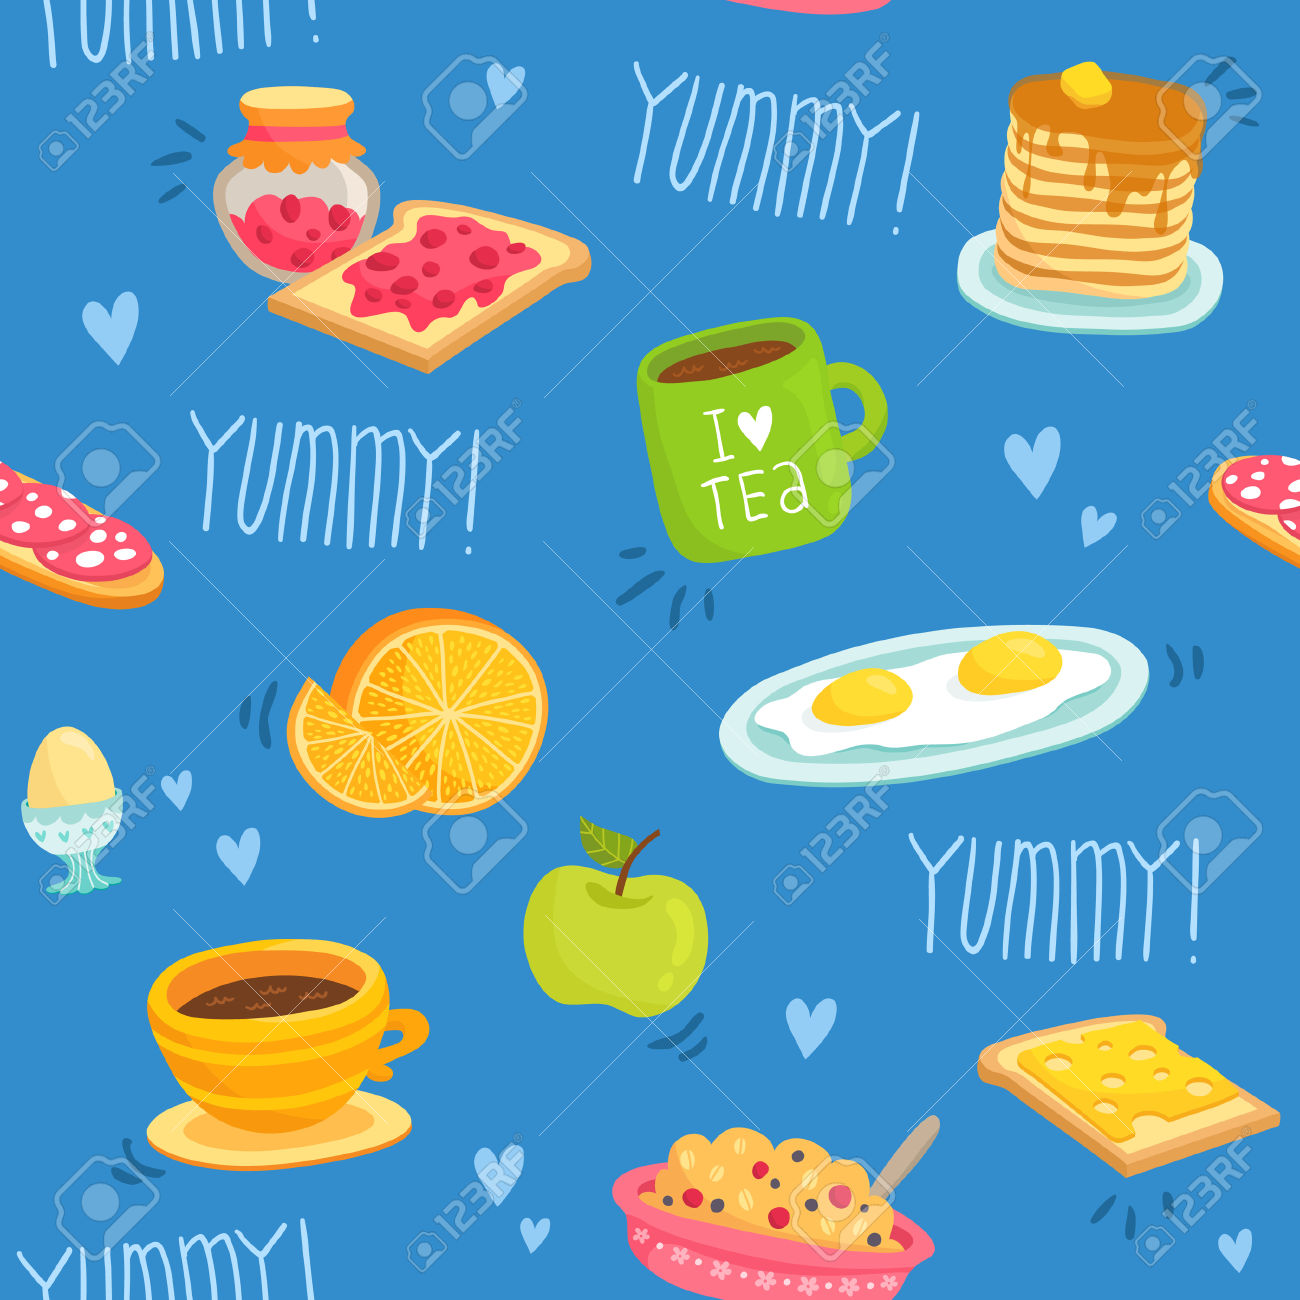 Cute Seamless Pattern With Various Breakfast Products: Tea, Coffee.